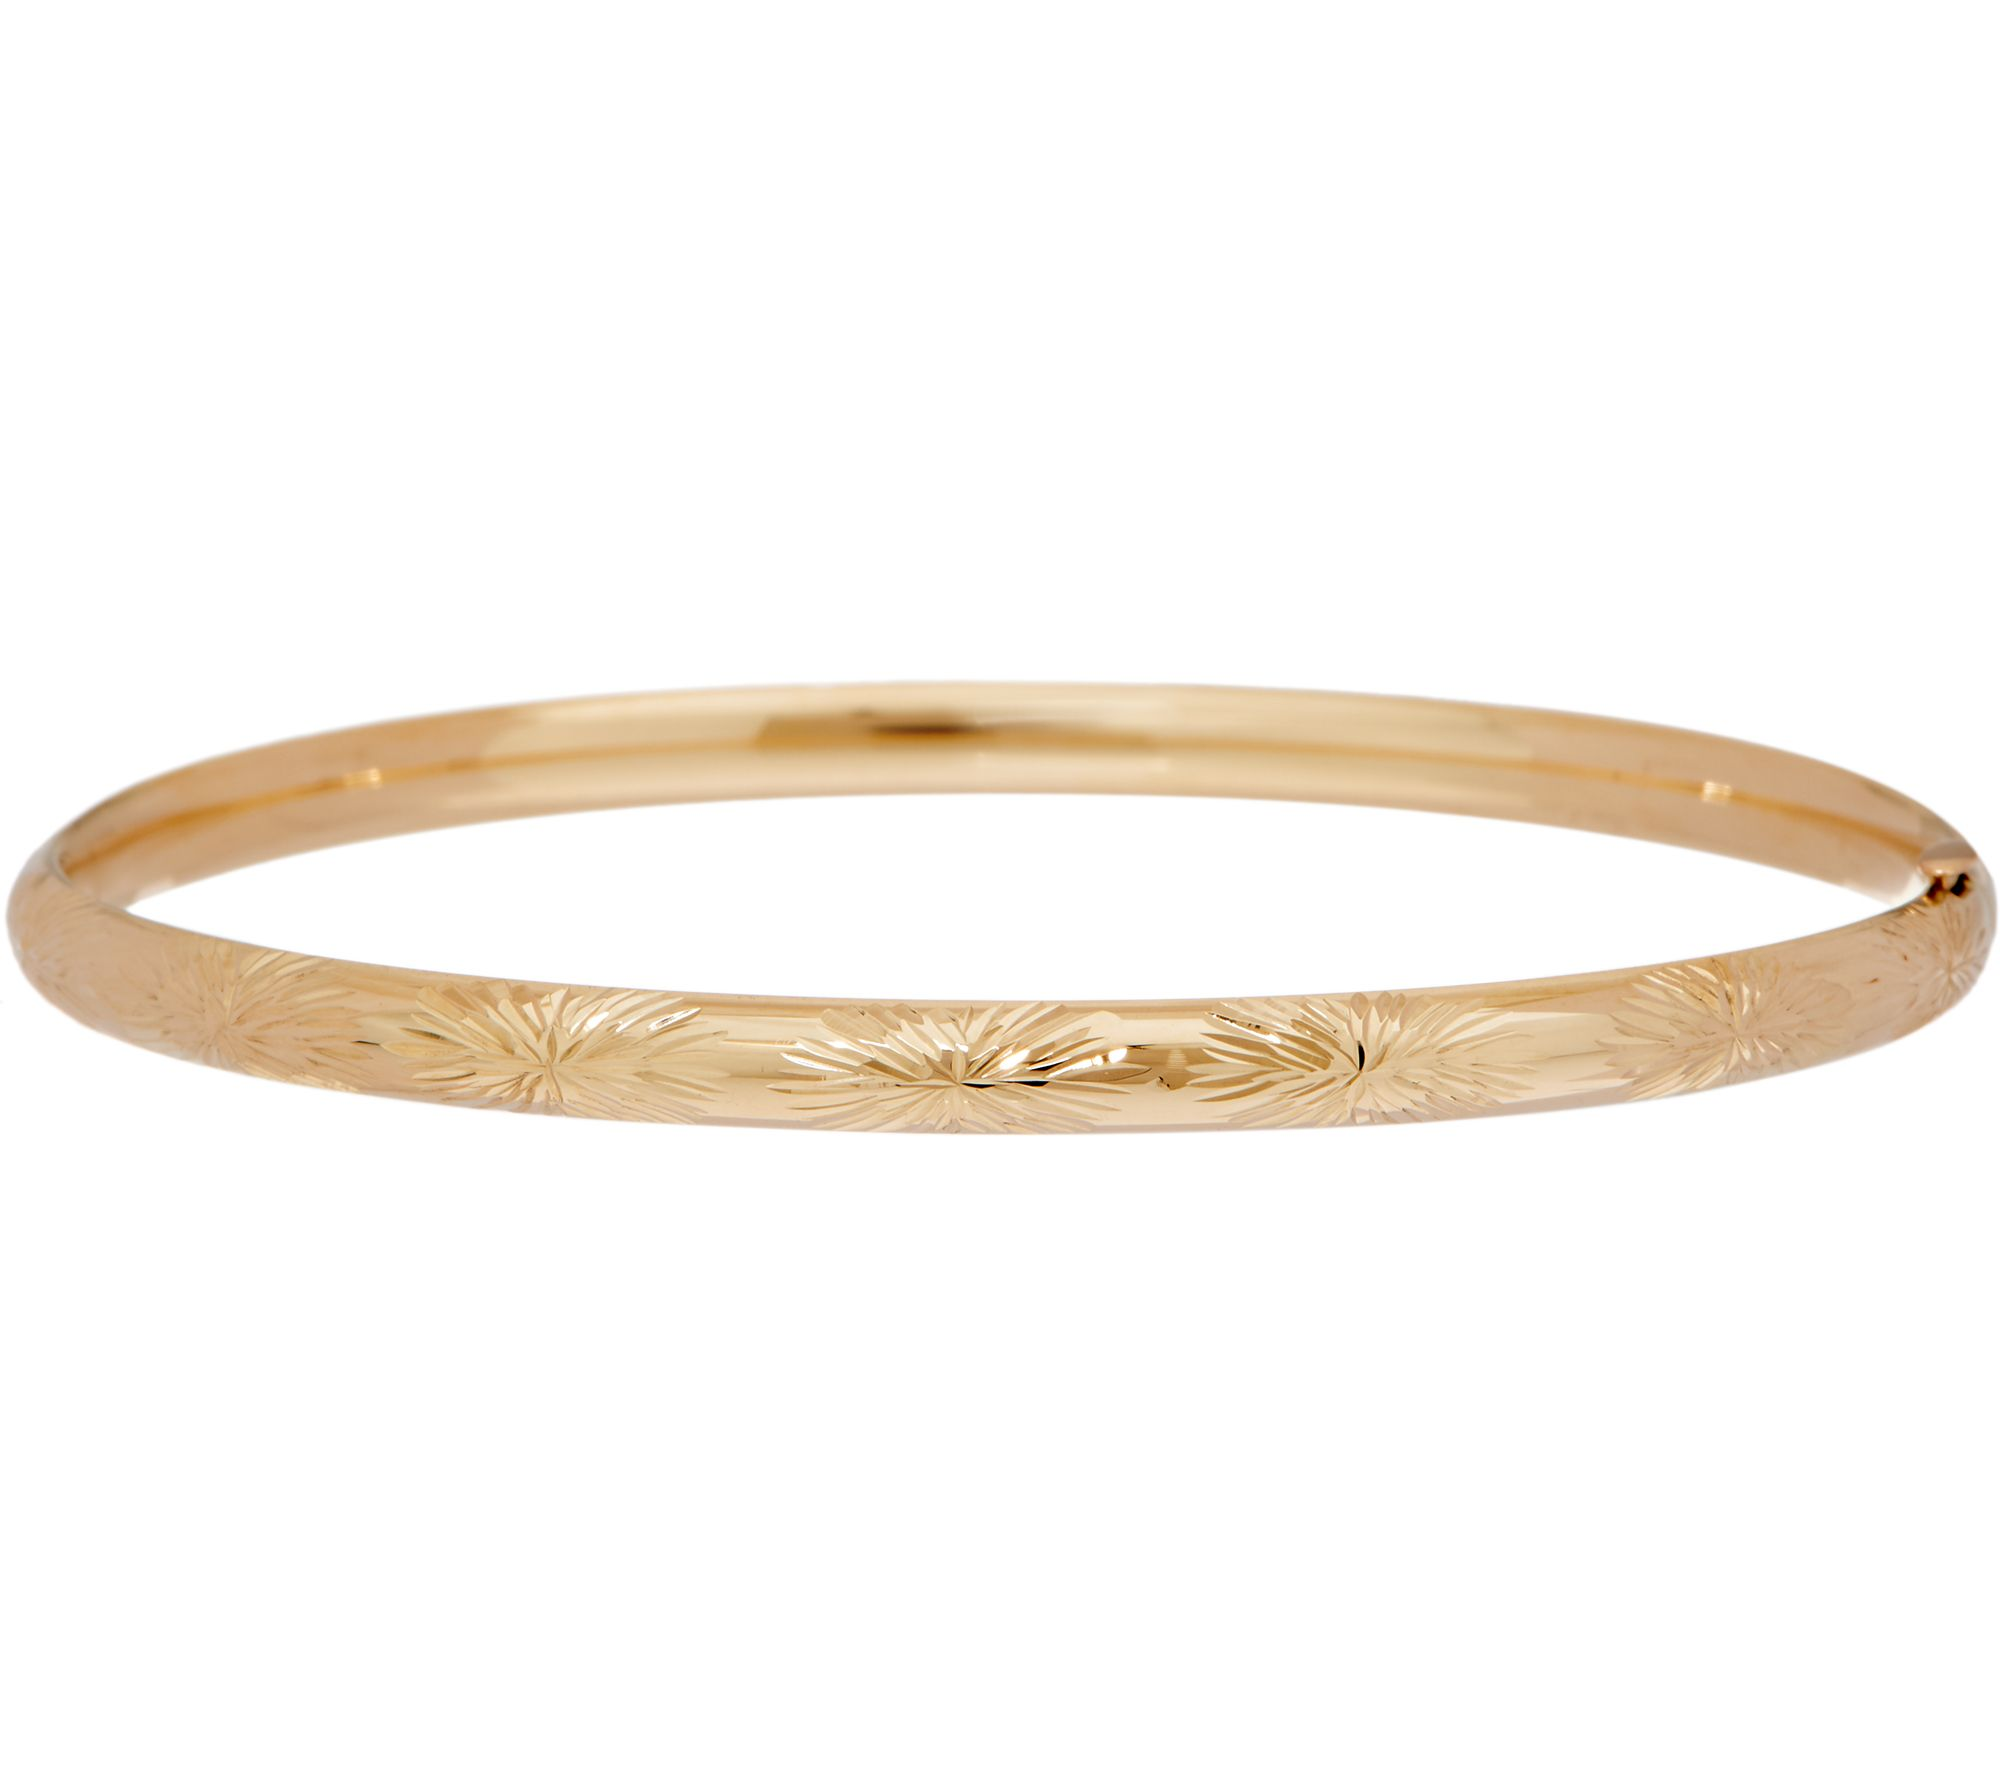 bangle bangles s dillards popular women gold accessories zi jewelry bracelets c bracelet